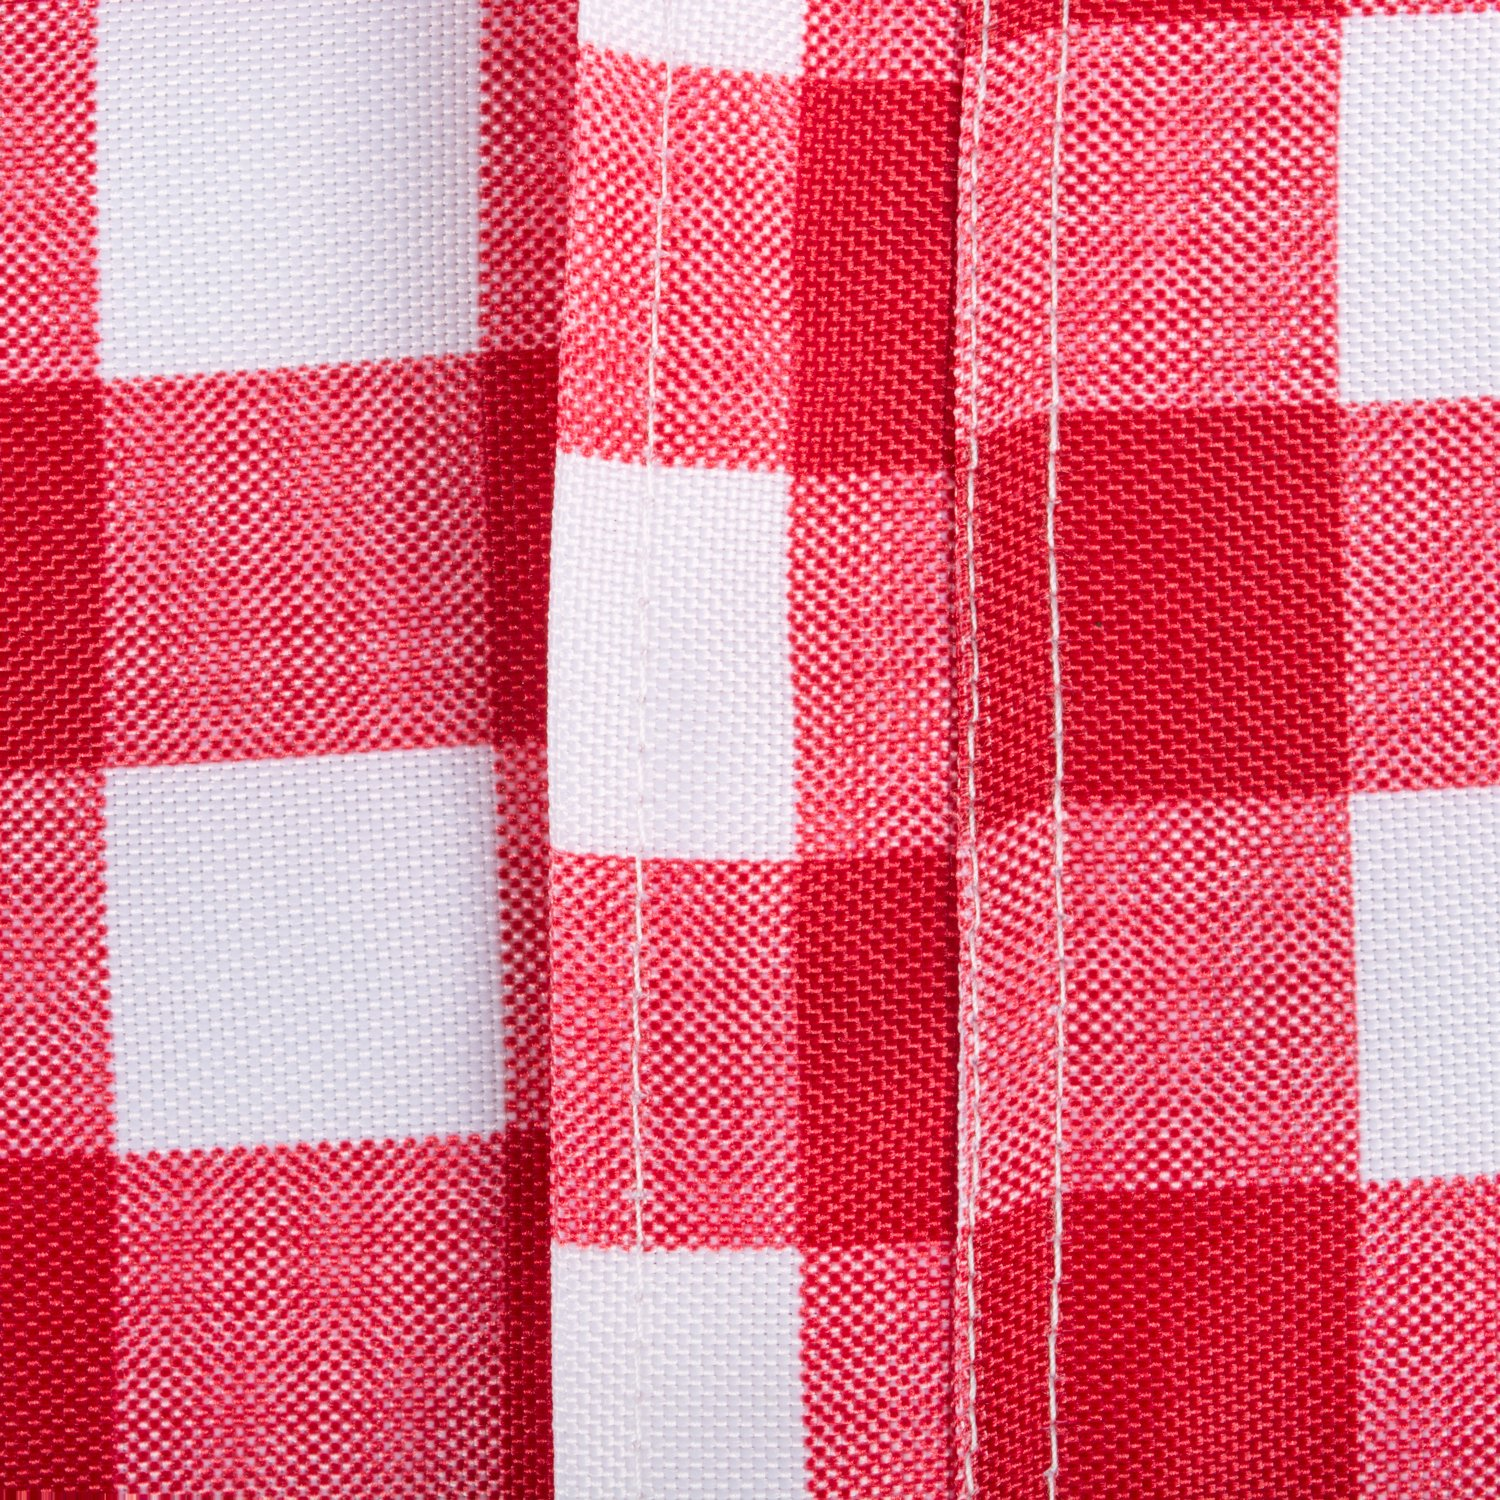 DII Spring & Summer Outdoor Tablecloth, Spill Proof and Waterproof with Zipper and Umbrella Hole, Host Backyard Parties, BBQs, & Family Gatherings - (60x120'' - Seats 10 to 12) Red Check by DII (Image #5)